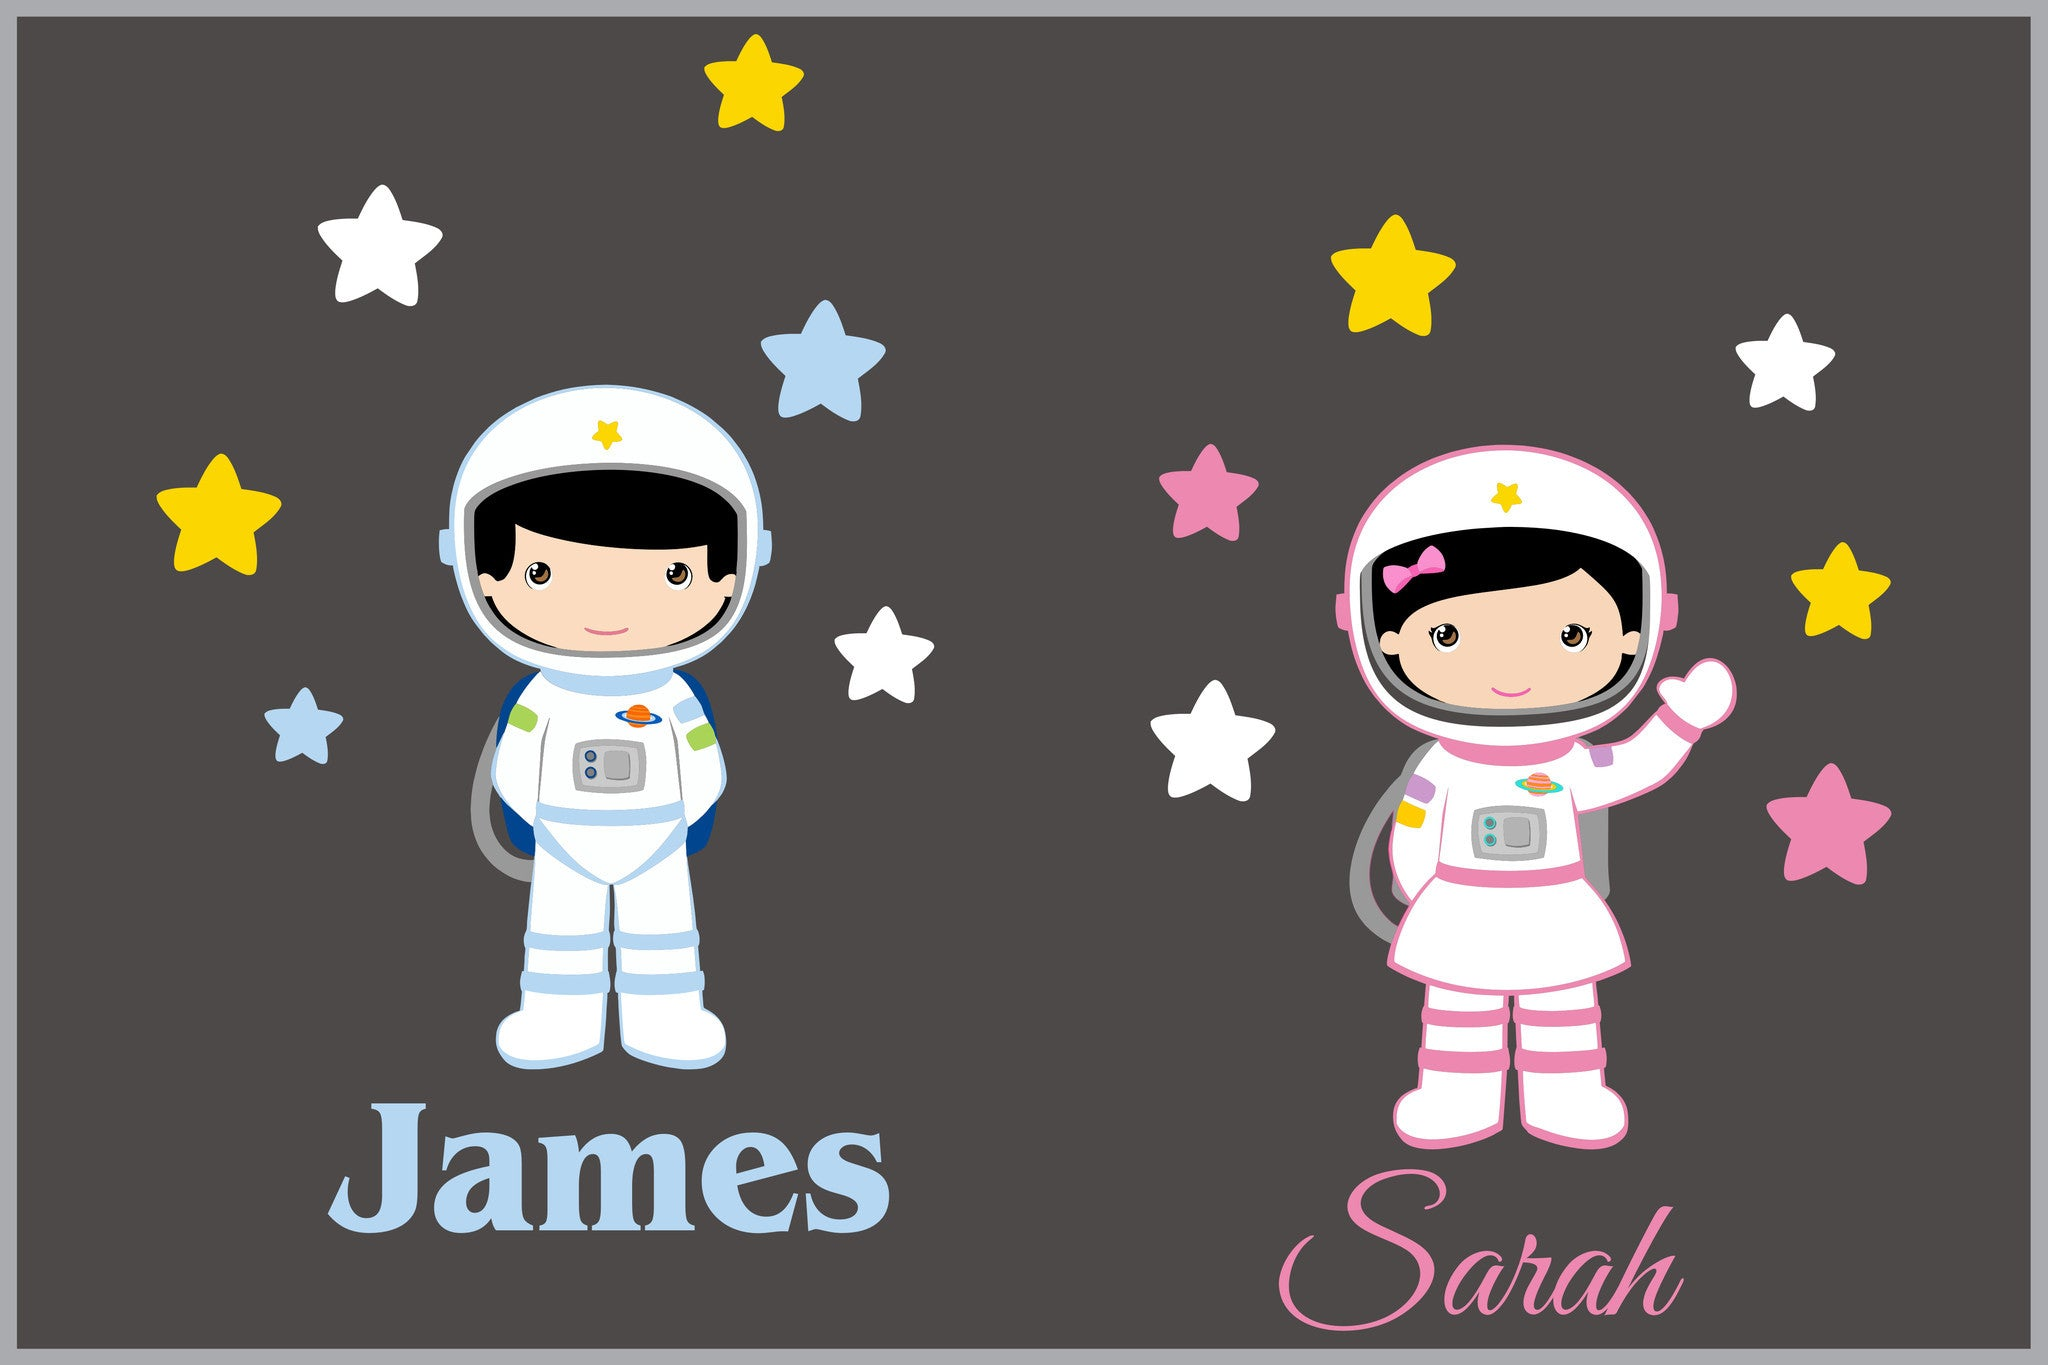 Astronaut Nursery Decals Monogrammed Name Stickers. Astronaut Nursery Decals   Monogrammed Name Sticker   Baby Boy or